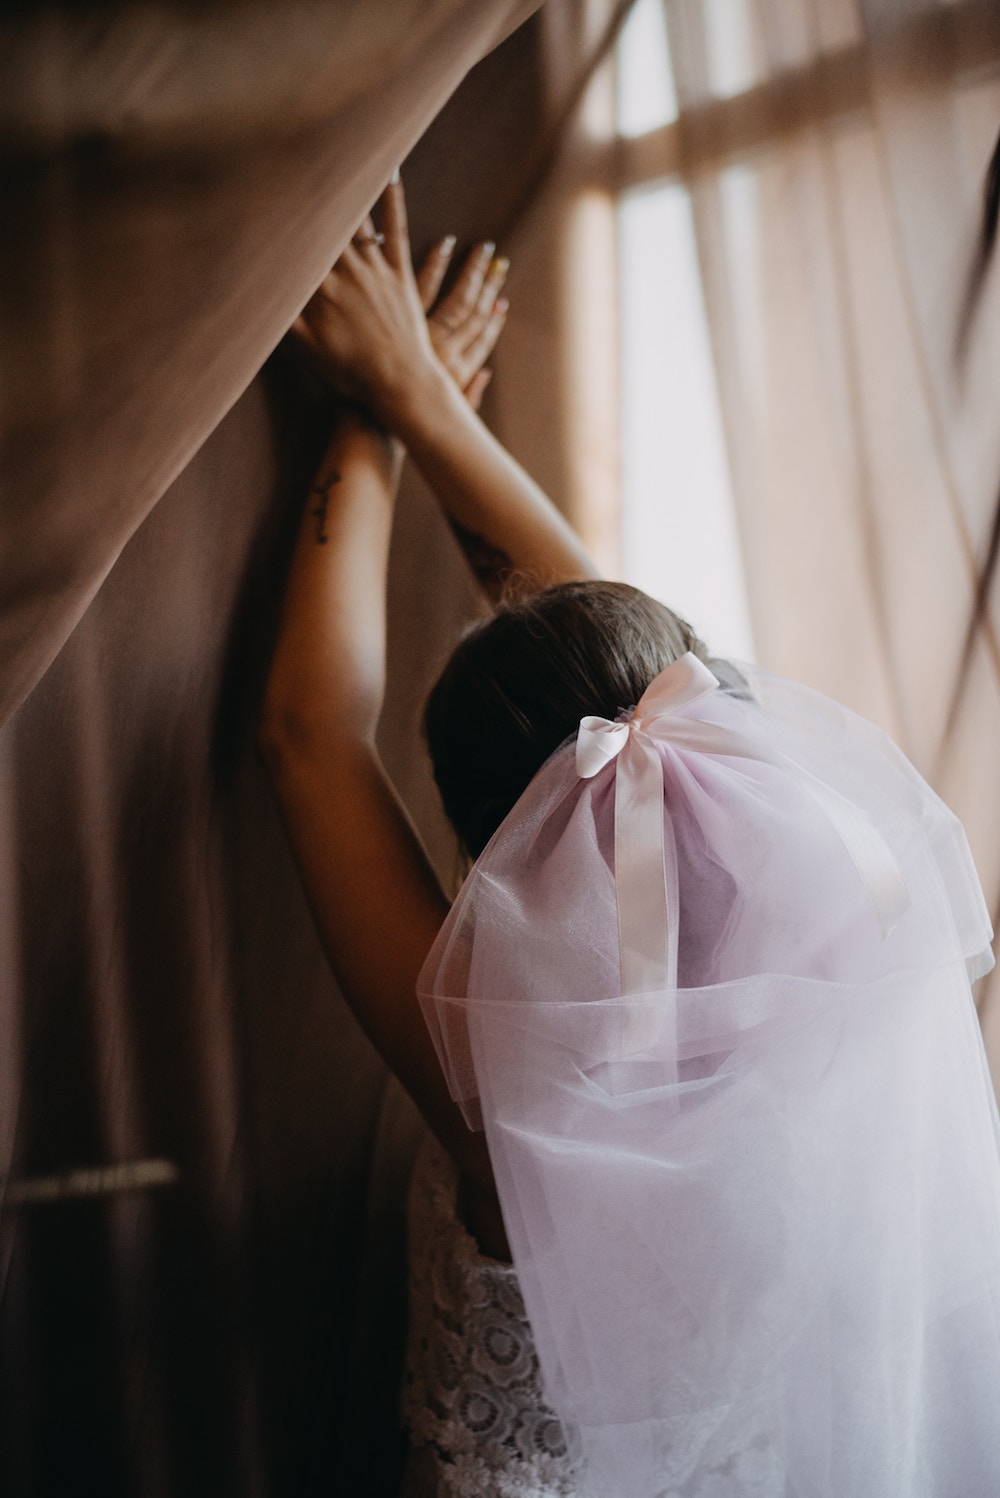 A bride with hands reaching upward